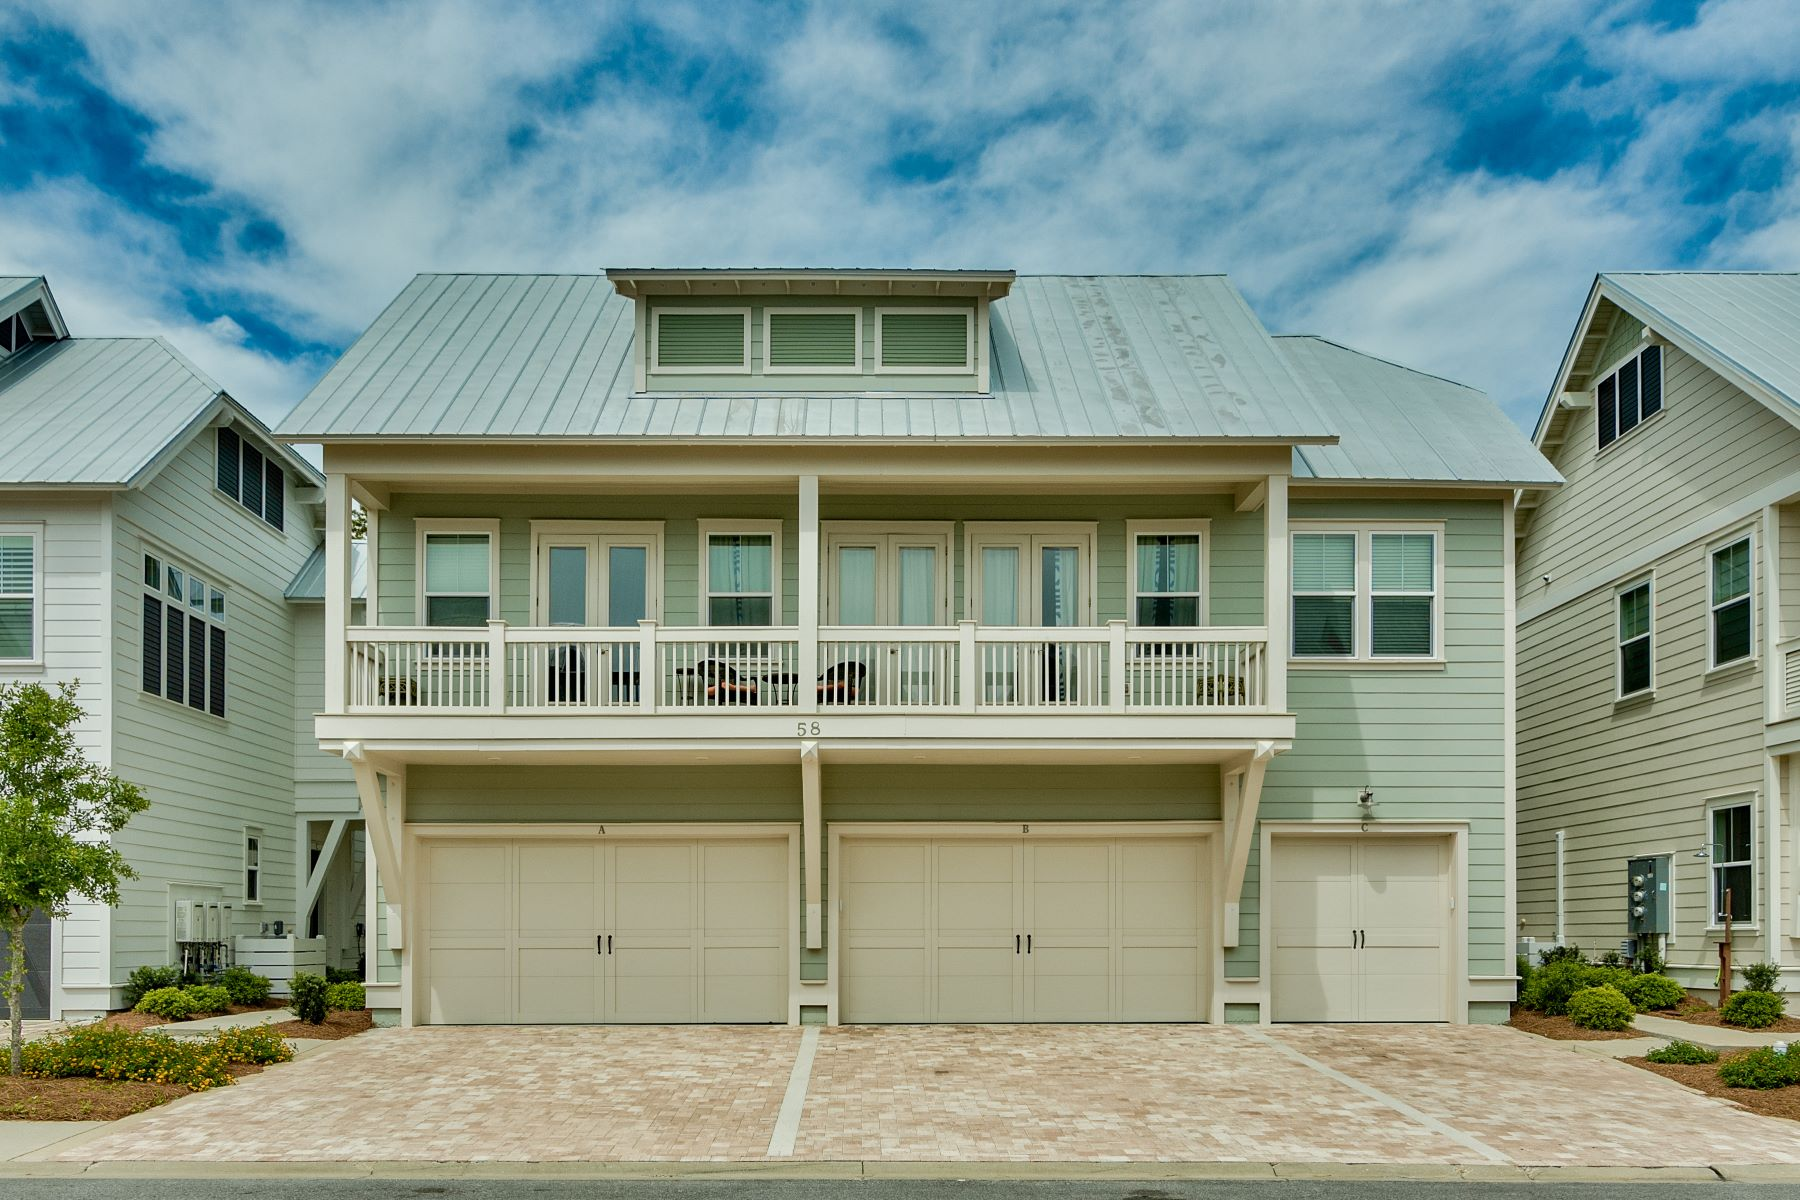 for Sale at Immaculate Turn-key Townhome with Resort Amenities in Prominence 58 York Lane B Inlet Beach, Florida 32461 United States